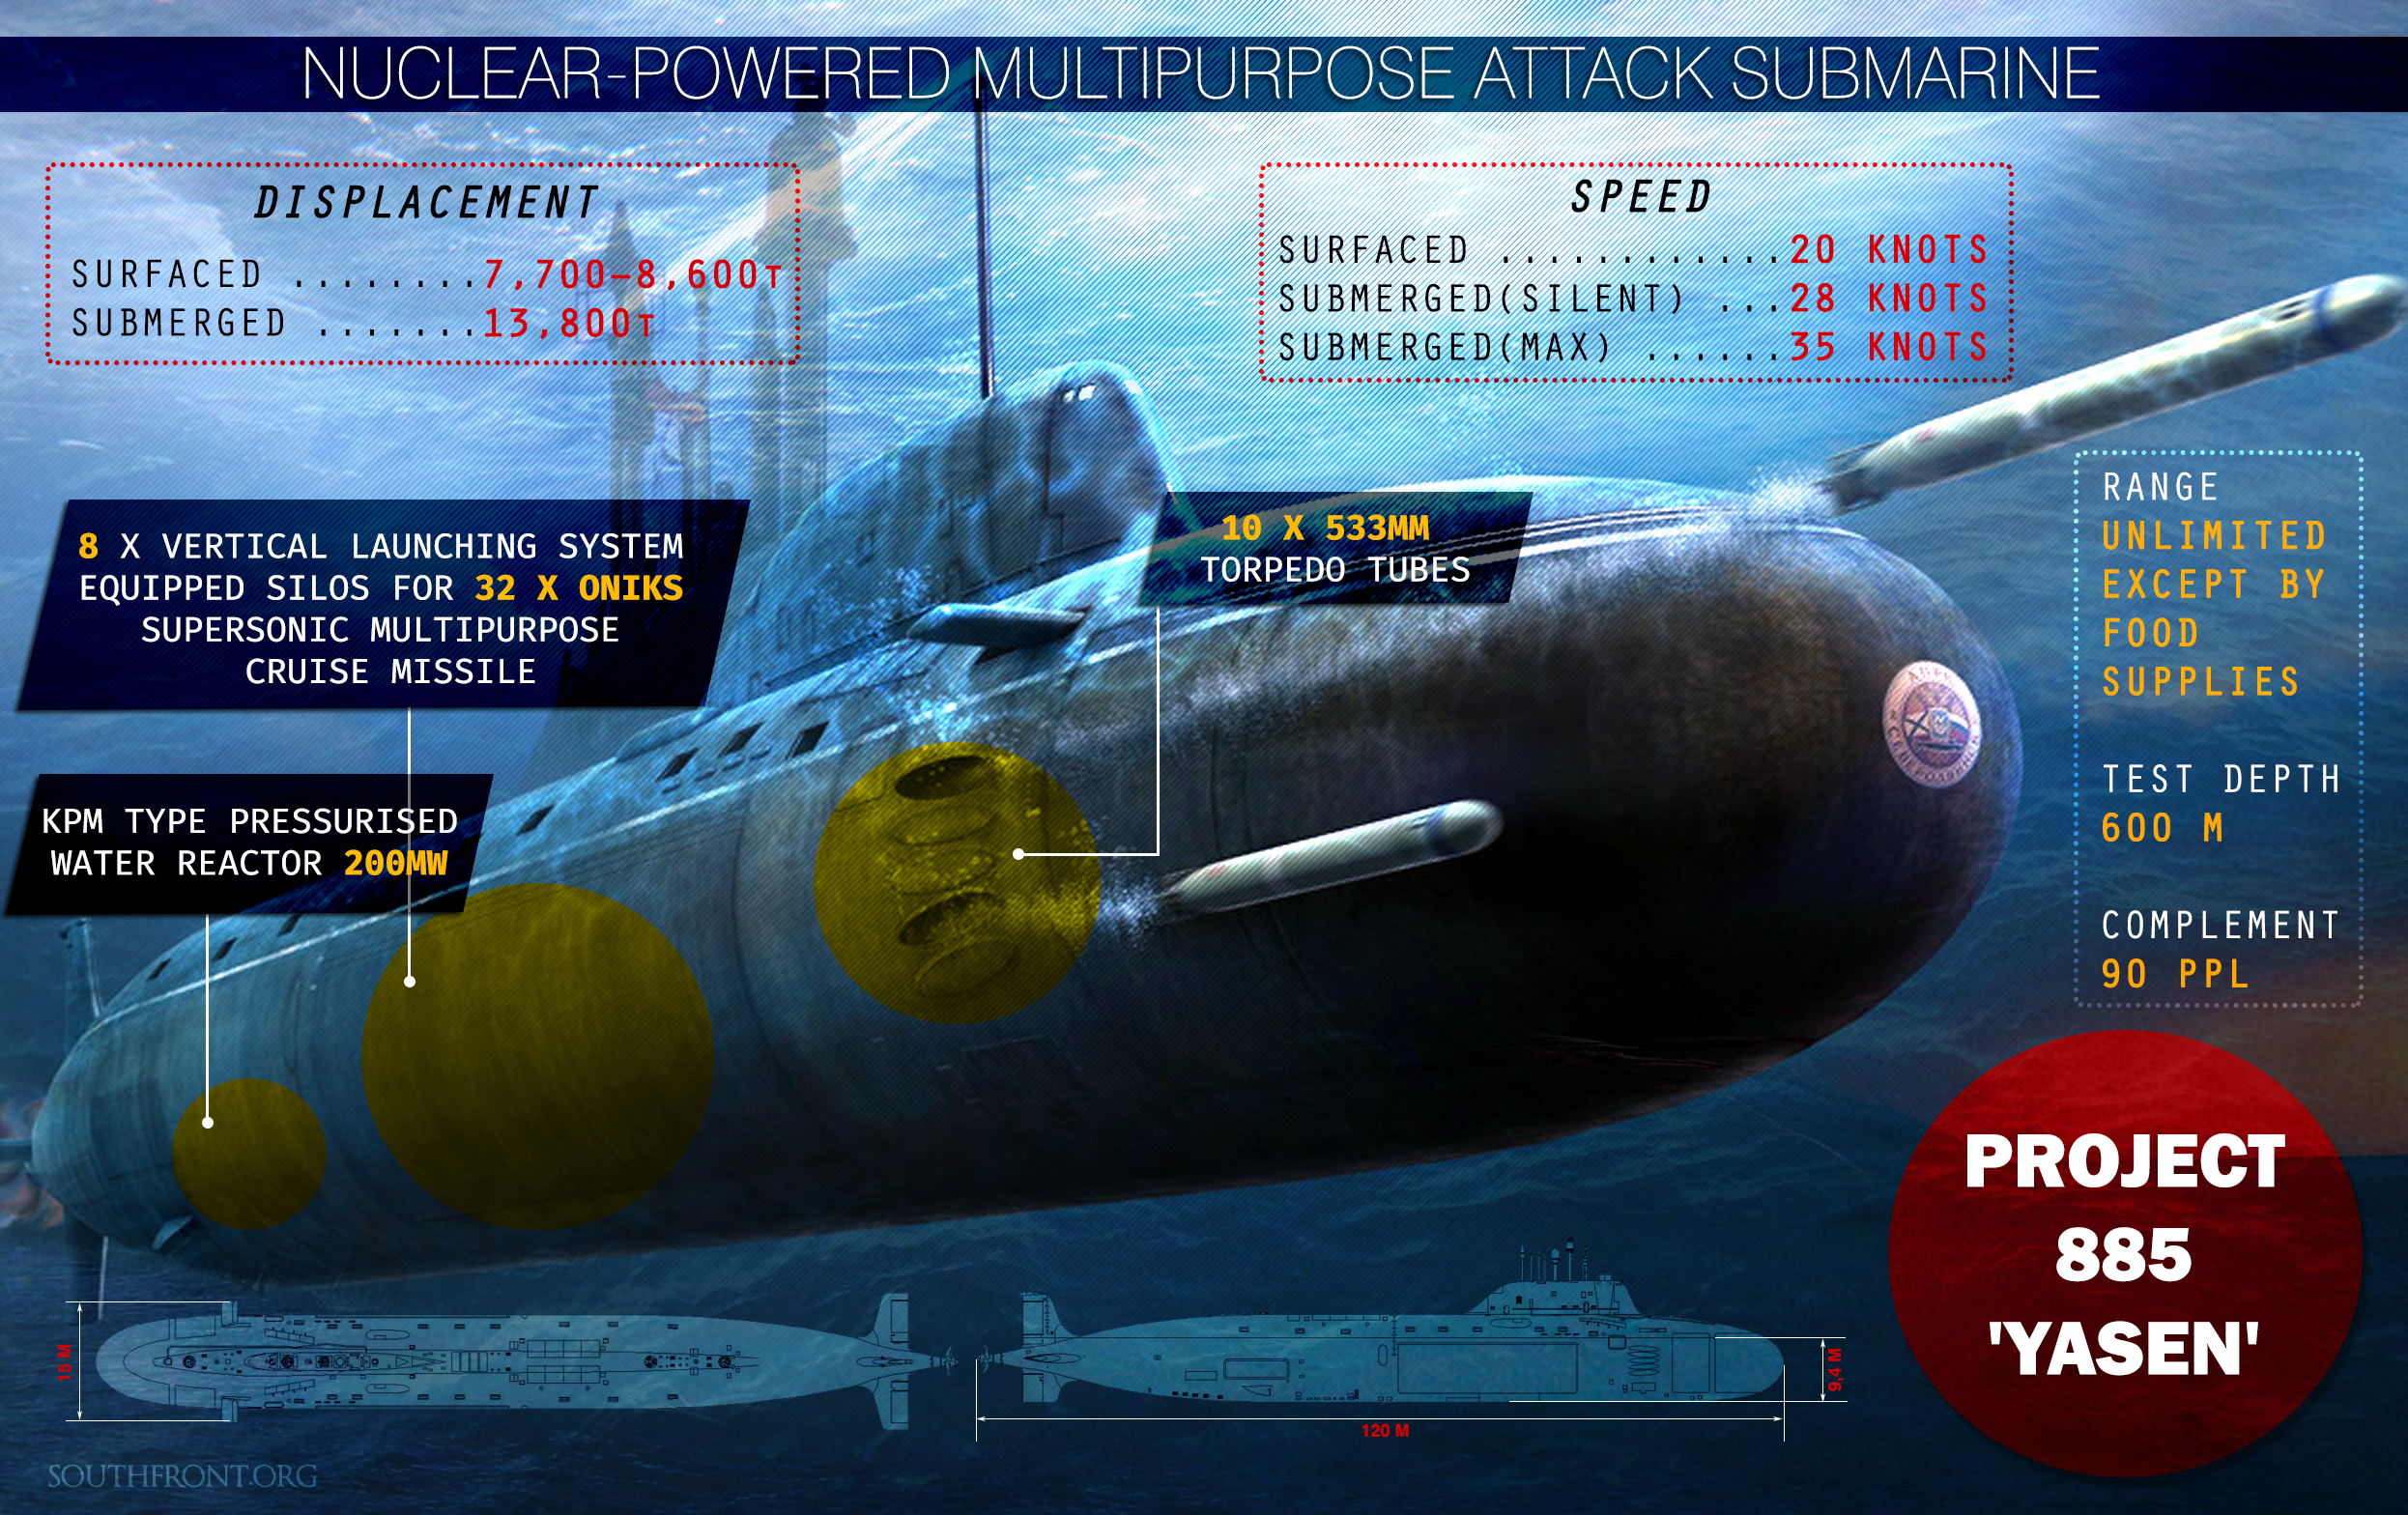 Project 885 Yasen Nuclear-Powered Multipurpose Attack Submarine (Infographics)